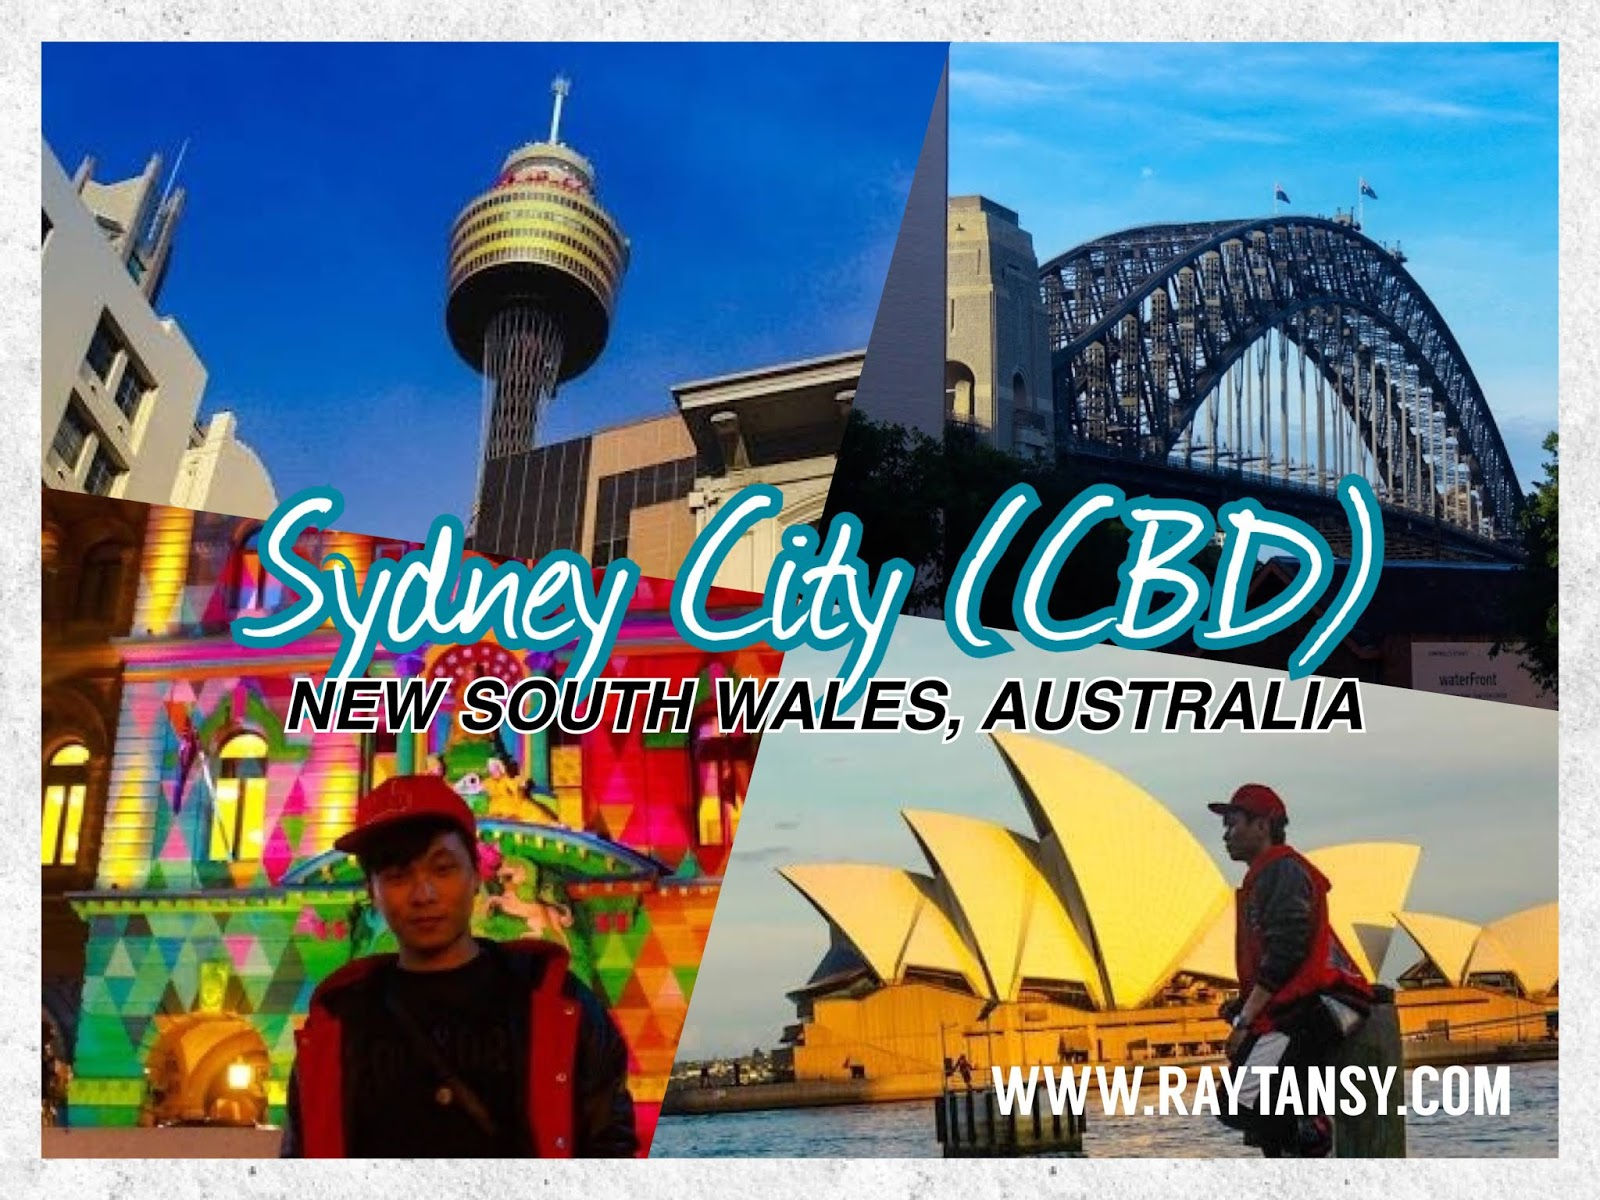 Ray Tan 陳學沿 (raytansy) ; Sydney City (CBD) @ New South Wales, Australia 澳洲 澳大利亚 悉尼 市区景点游